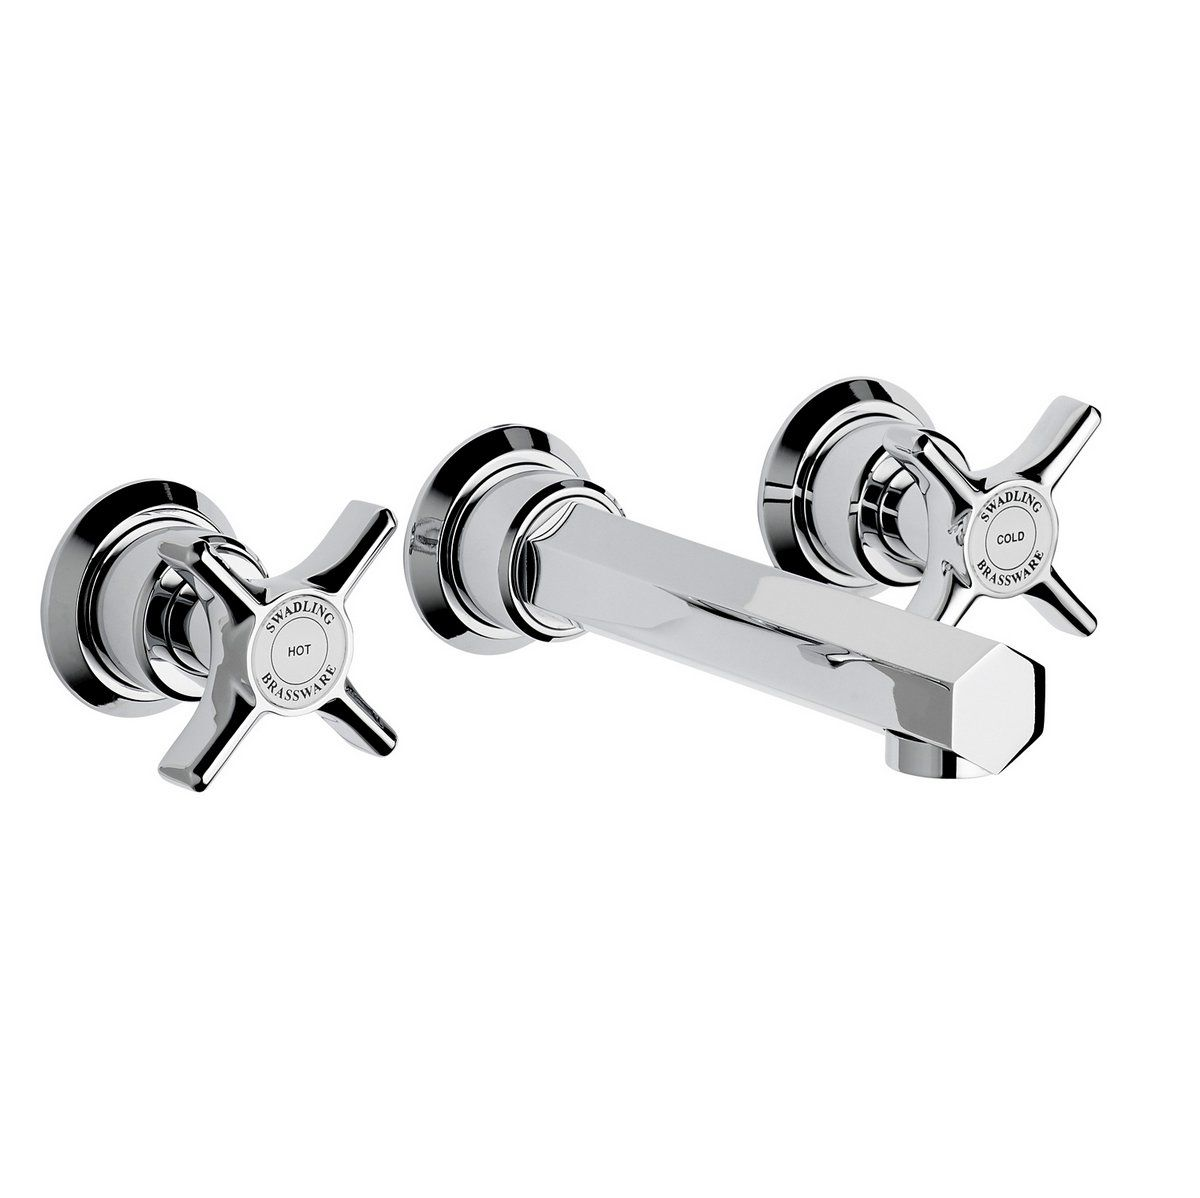 Swadling Illustrious 3 Hole Wall Mounted Basin Mixer